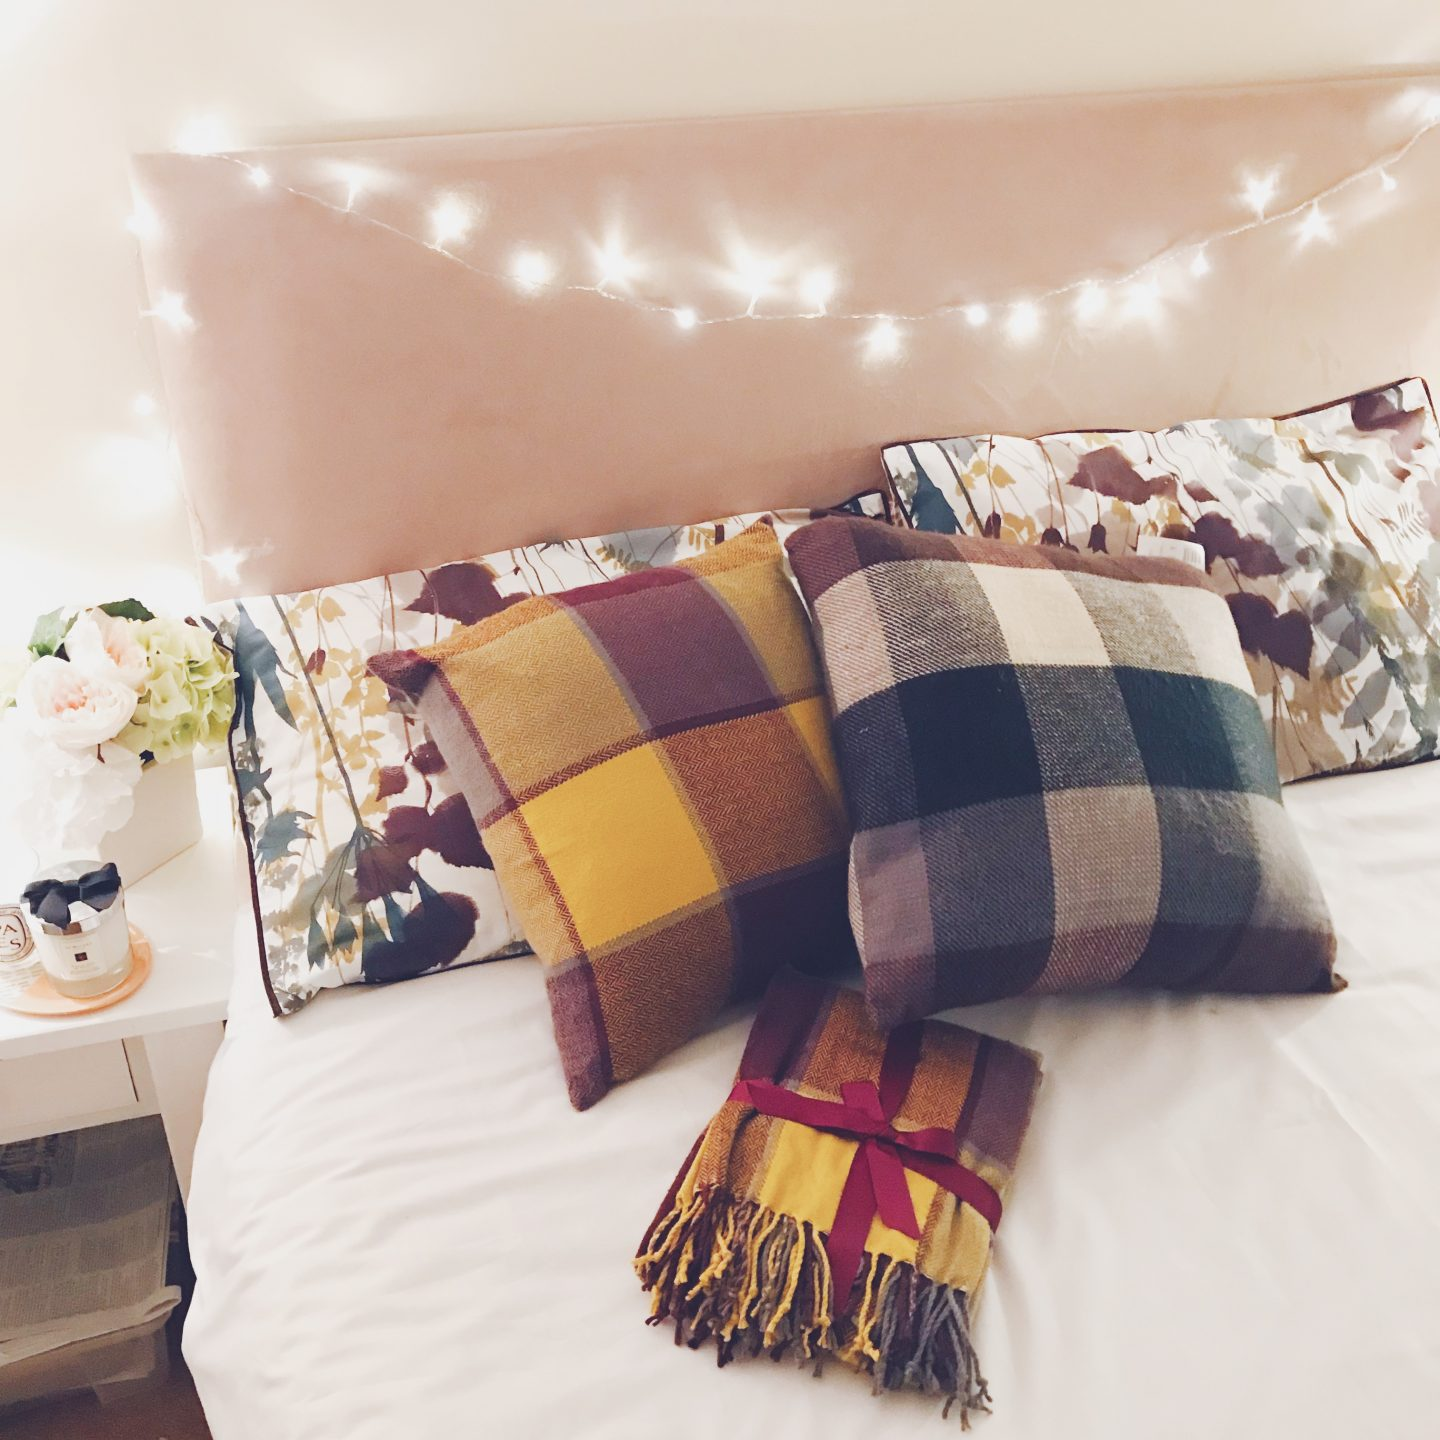 Sainsbury's homeware, sainsbury's bedding, autumnal vibes, autumnal bedding